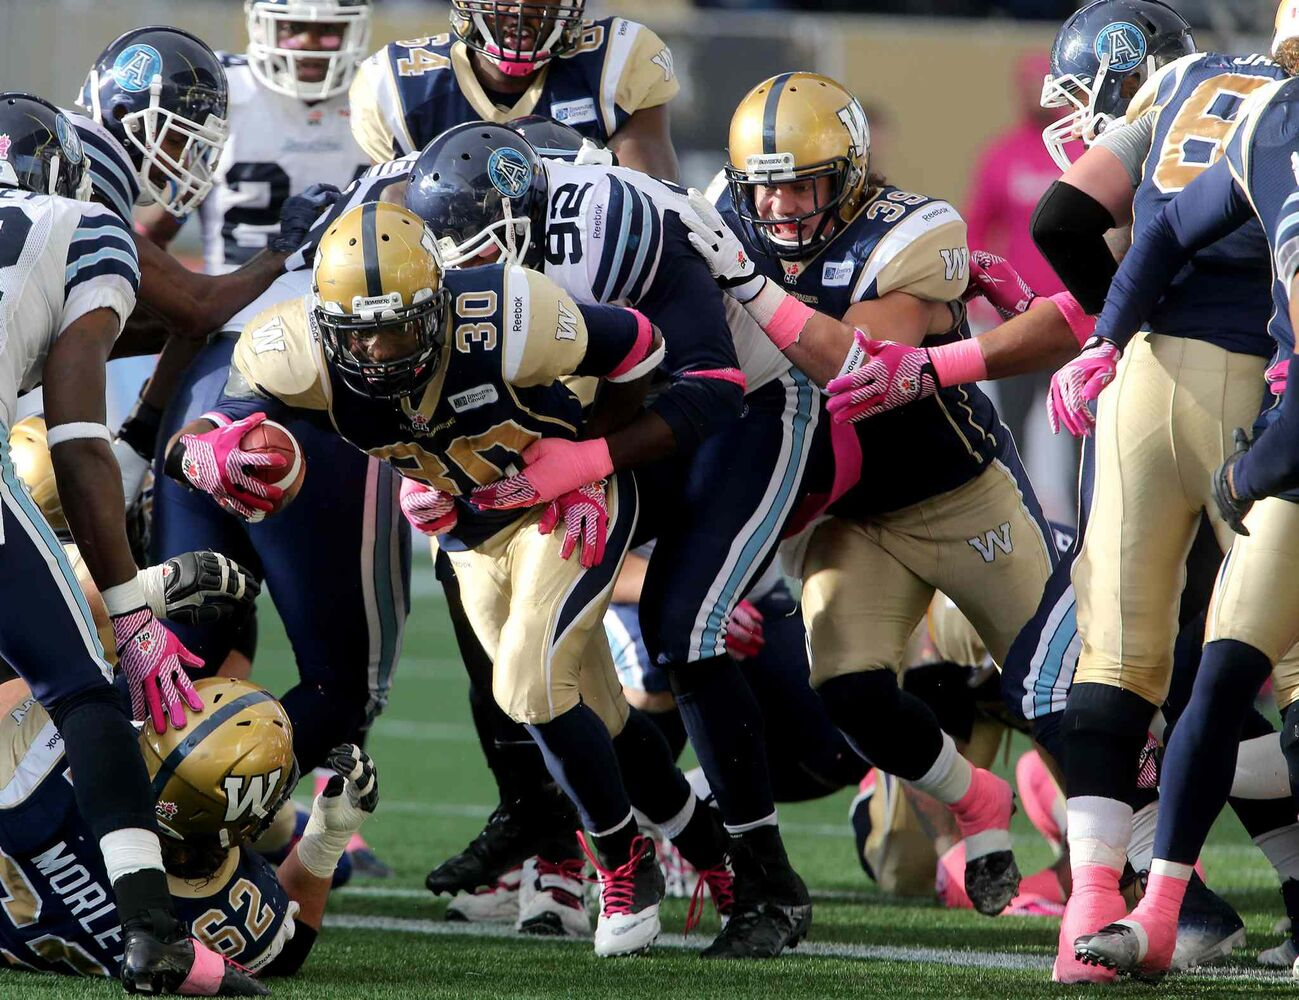 Winnipeg Blue Bombers' Will Ford (30) manages to break through the Toronto Argonauts' defensive line to score during the second half. (TREVOR HAGAN / WINNIPEG FREE PRESS)